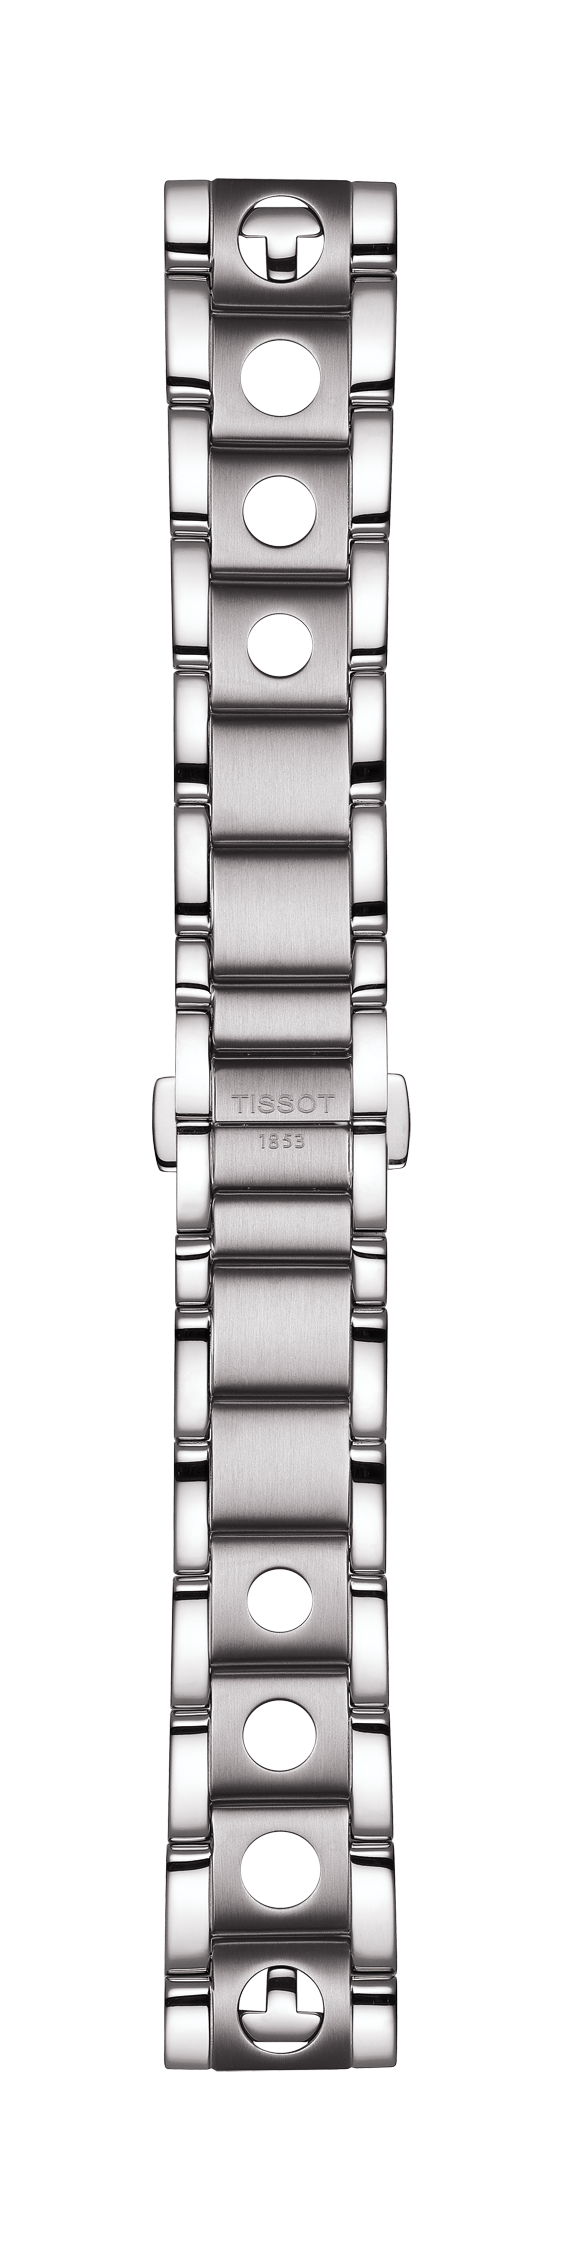 Tissot PRS 516 J565/665 Steel Watch Bracelet